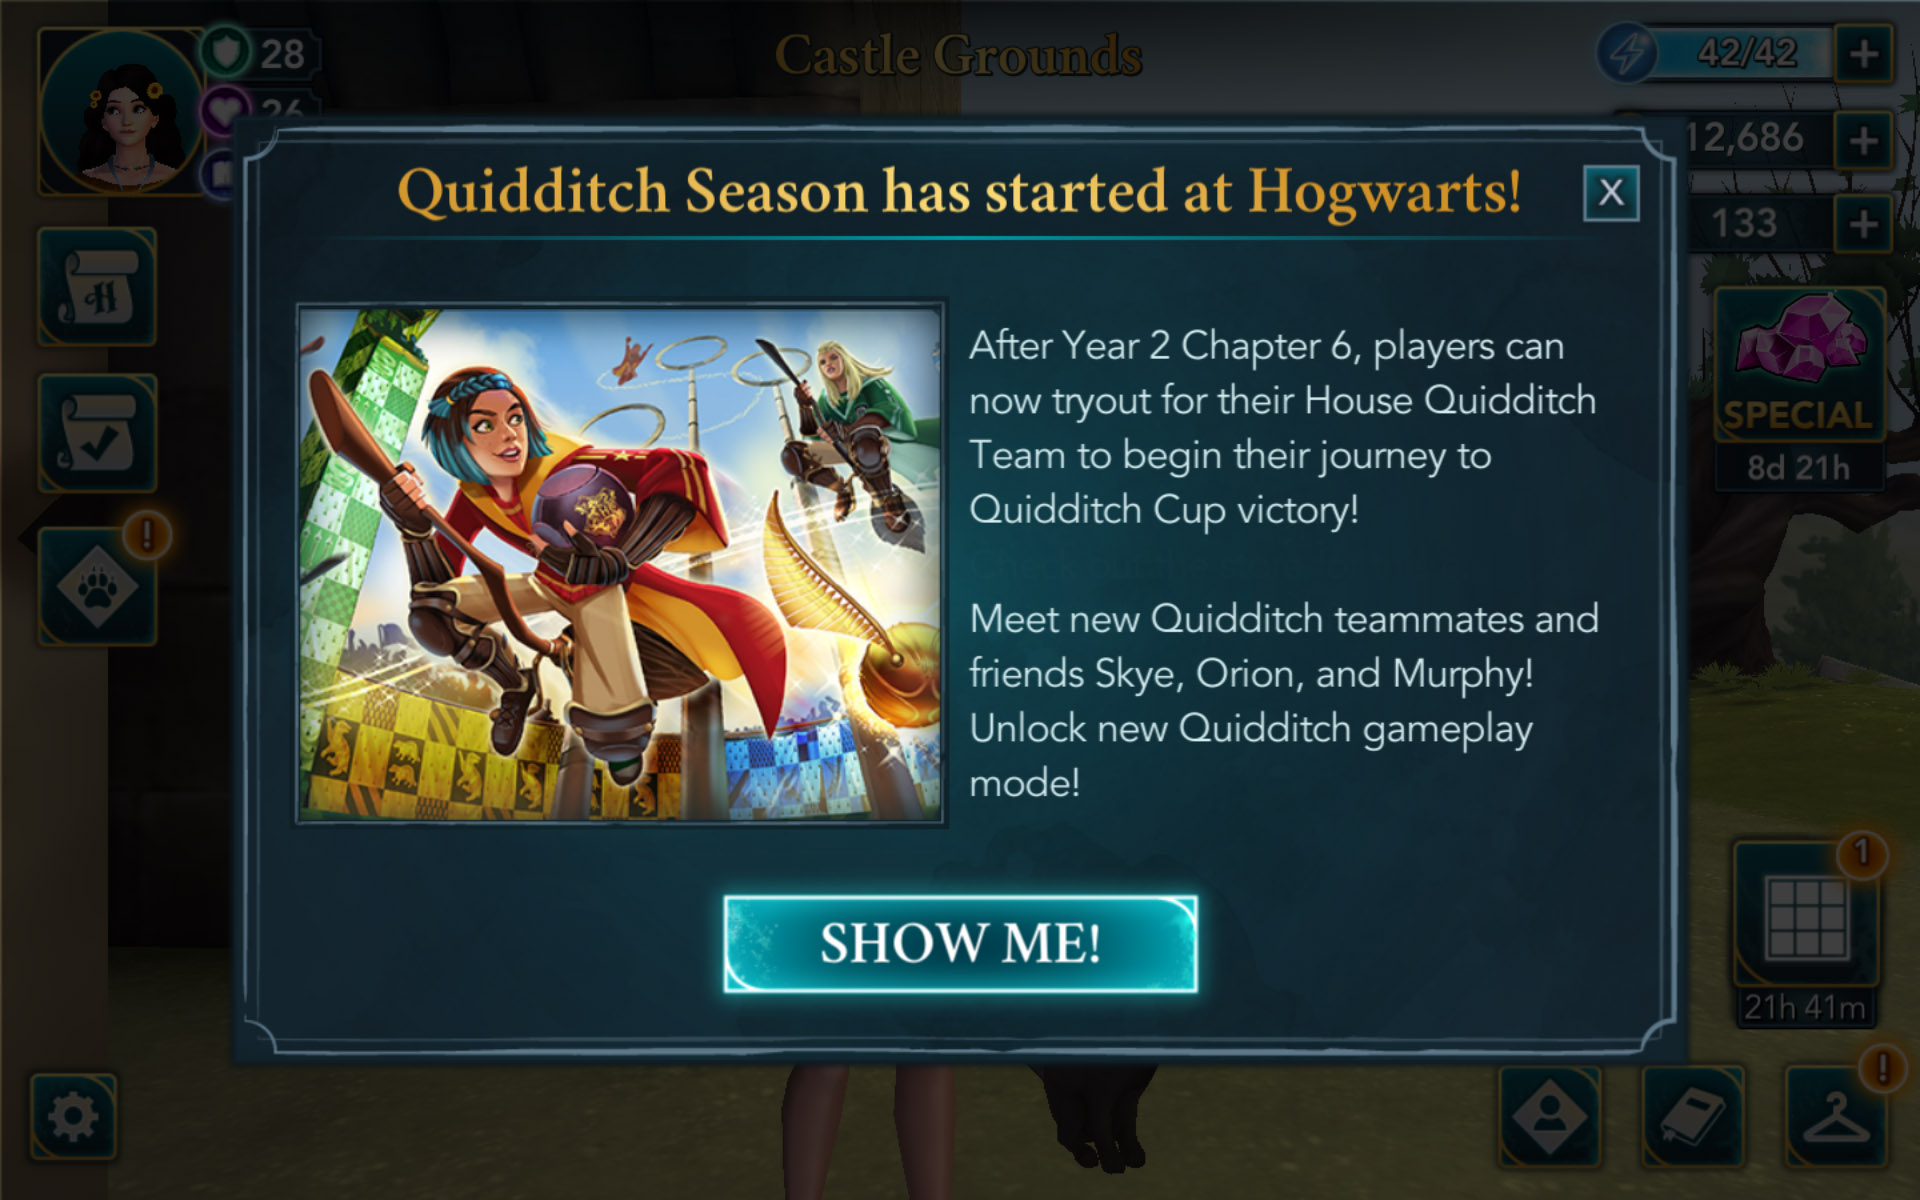 """The new Quidditch update to """"Harry Potter: Hogwarts Mystery"""" is greeting players today with a screen welcoming them to the Quidditch season."""